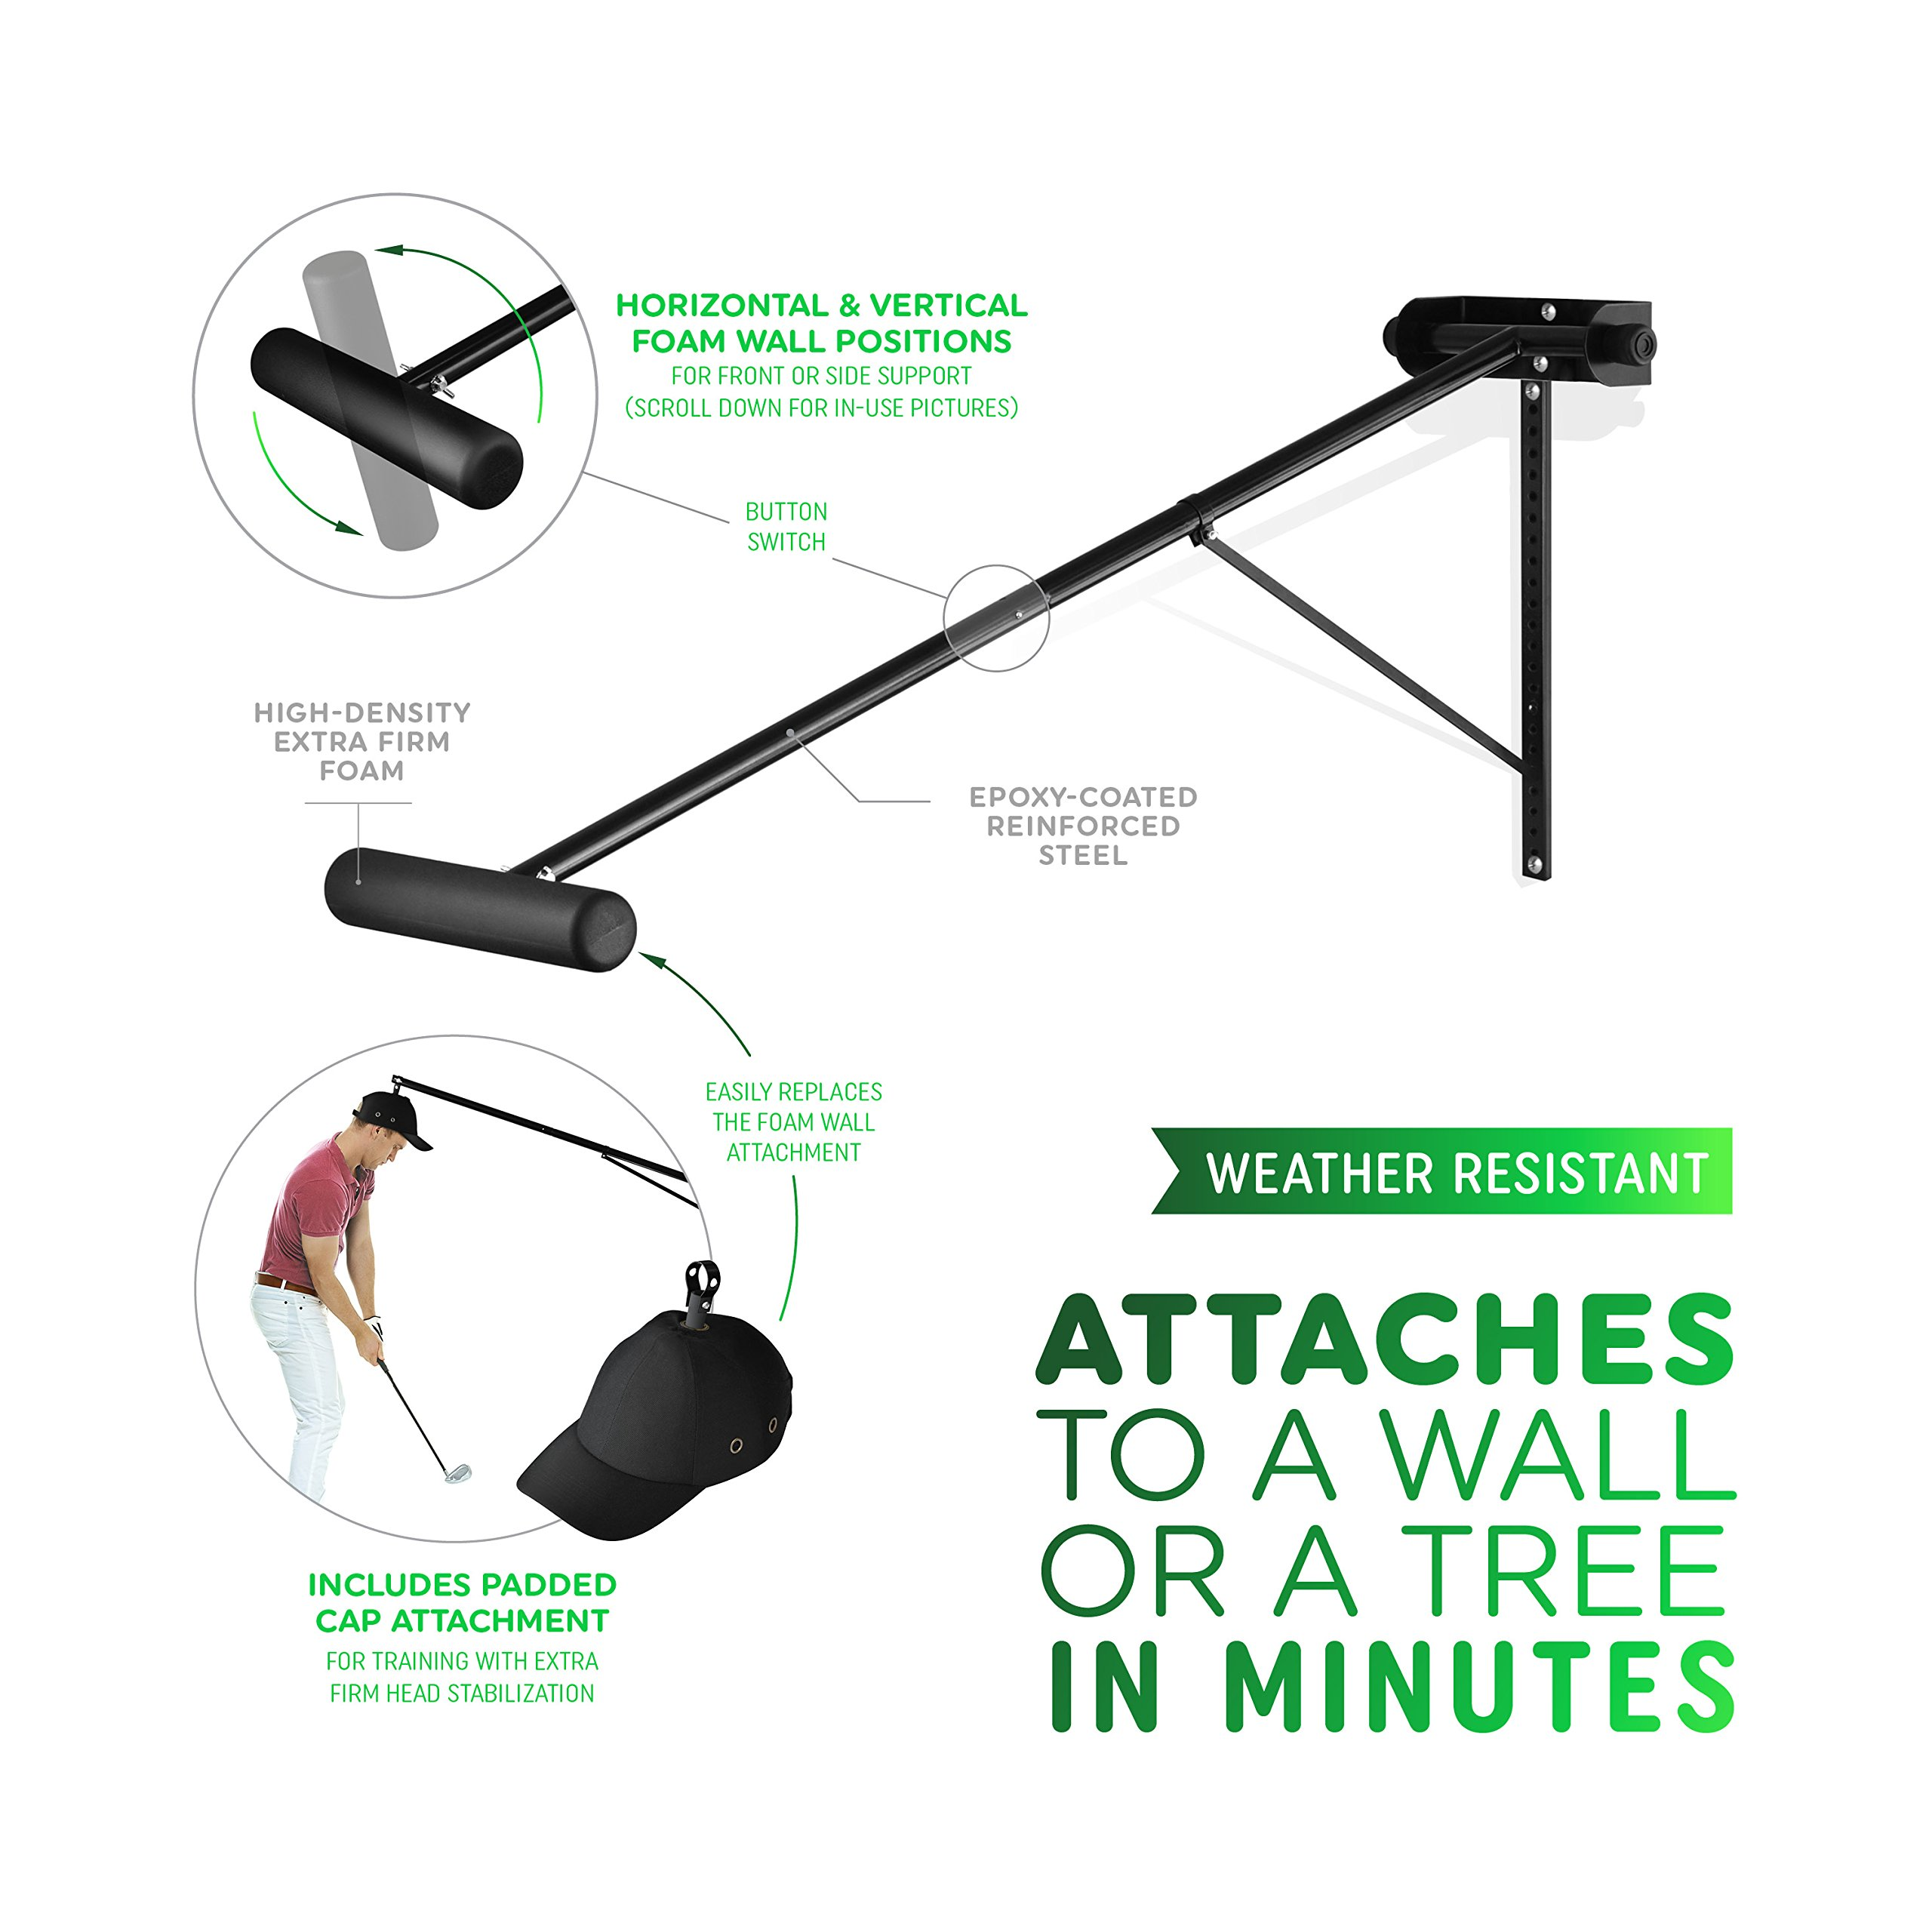 Golf Swing Trainer PRO-HEAD - Wall or Tree Golf Training Aid Equipment for All Golfers - Posture Correcting Tool - Fix and Keep a Steady Head, Maintain Spine Angle - Practice Indoor & Outdoor by PRO-HEAD (Image #2)